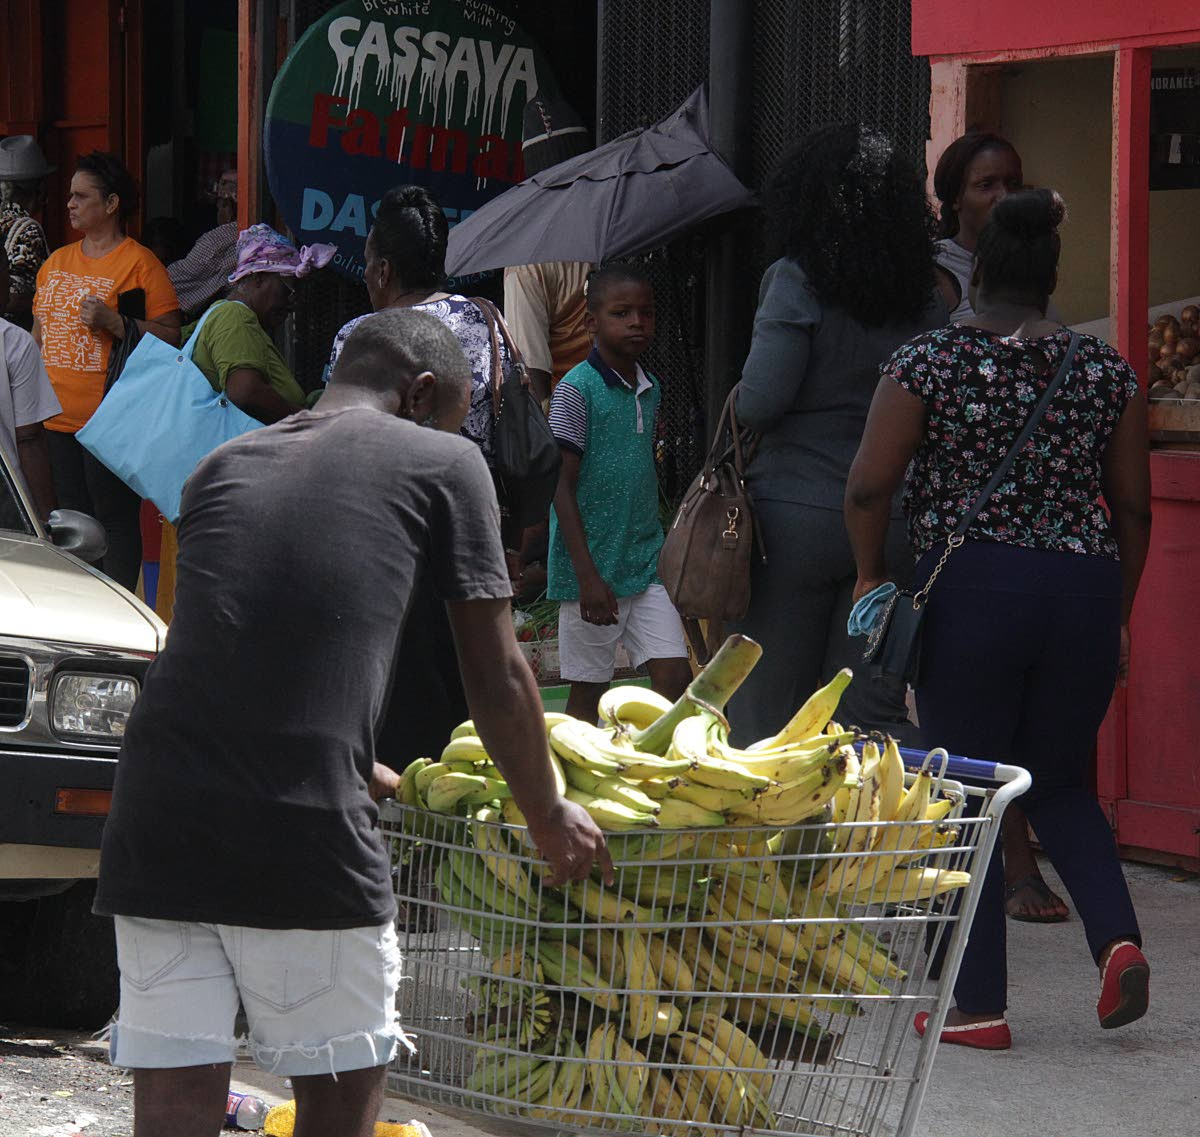 A man pushes a cart filled with plantains, as vendors navigate around the current restrictions by the City council. PHOTO BY ROGER JACOB